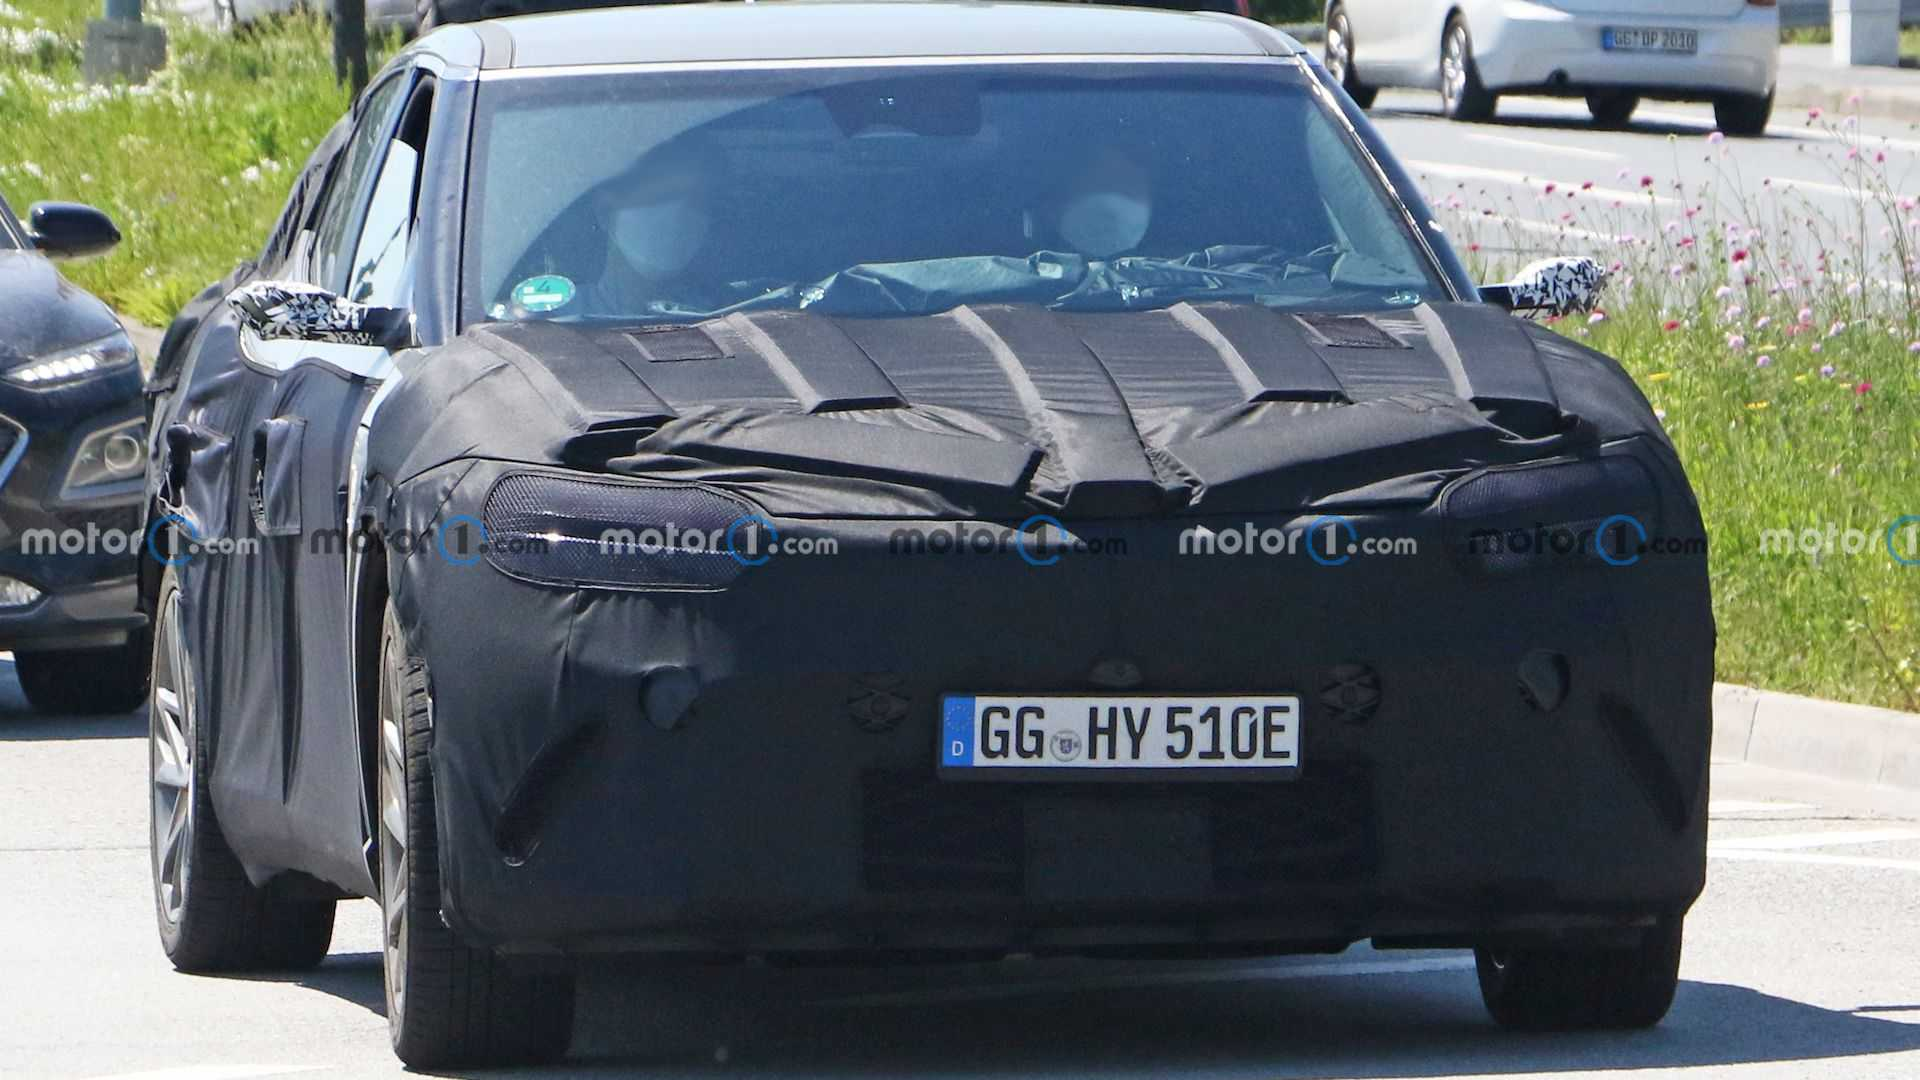 A pre-production sample of the Genesis GV60 battery crossover has been sighted in Germany recently. The car is slated to become the marque's third SUV after the GV70 and GV80 and arrive as an all-electric model based on the E-GMP underpinnings of the Kia EV6/Hyundai Ioniq 5.